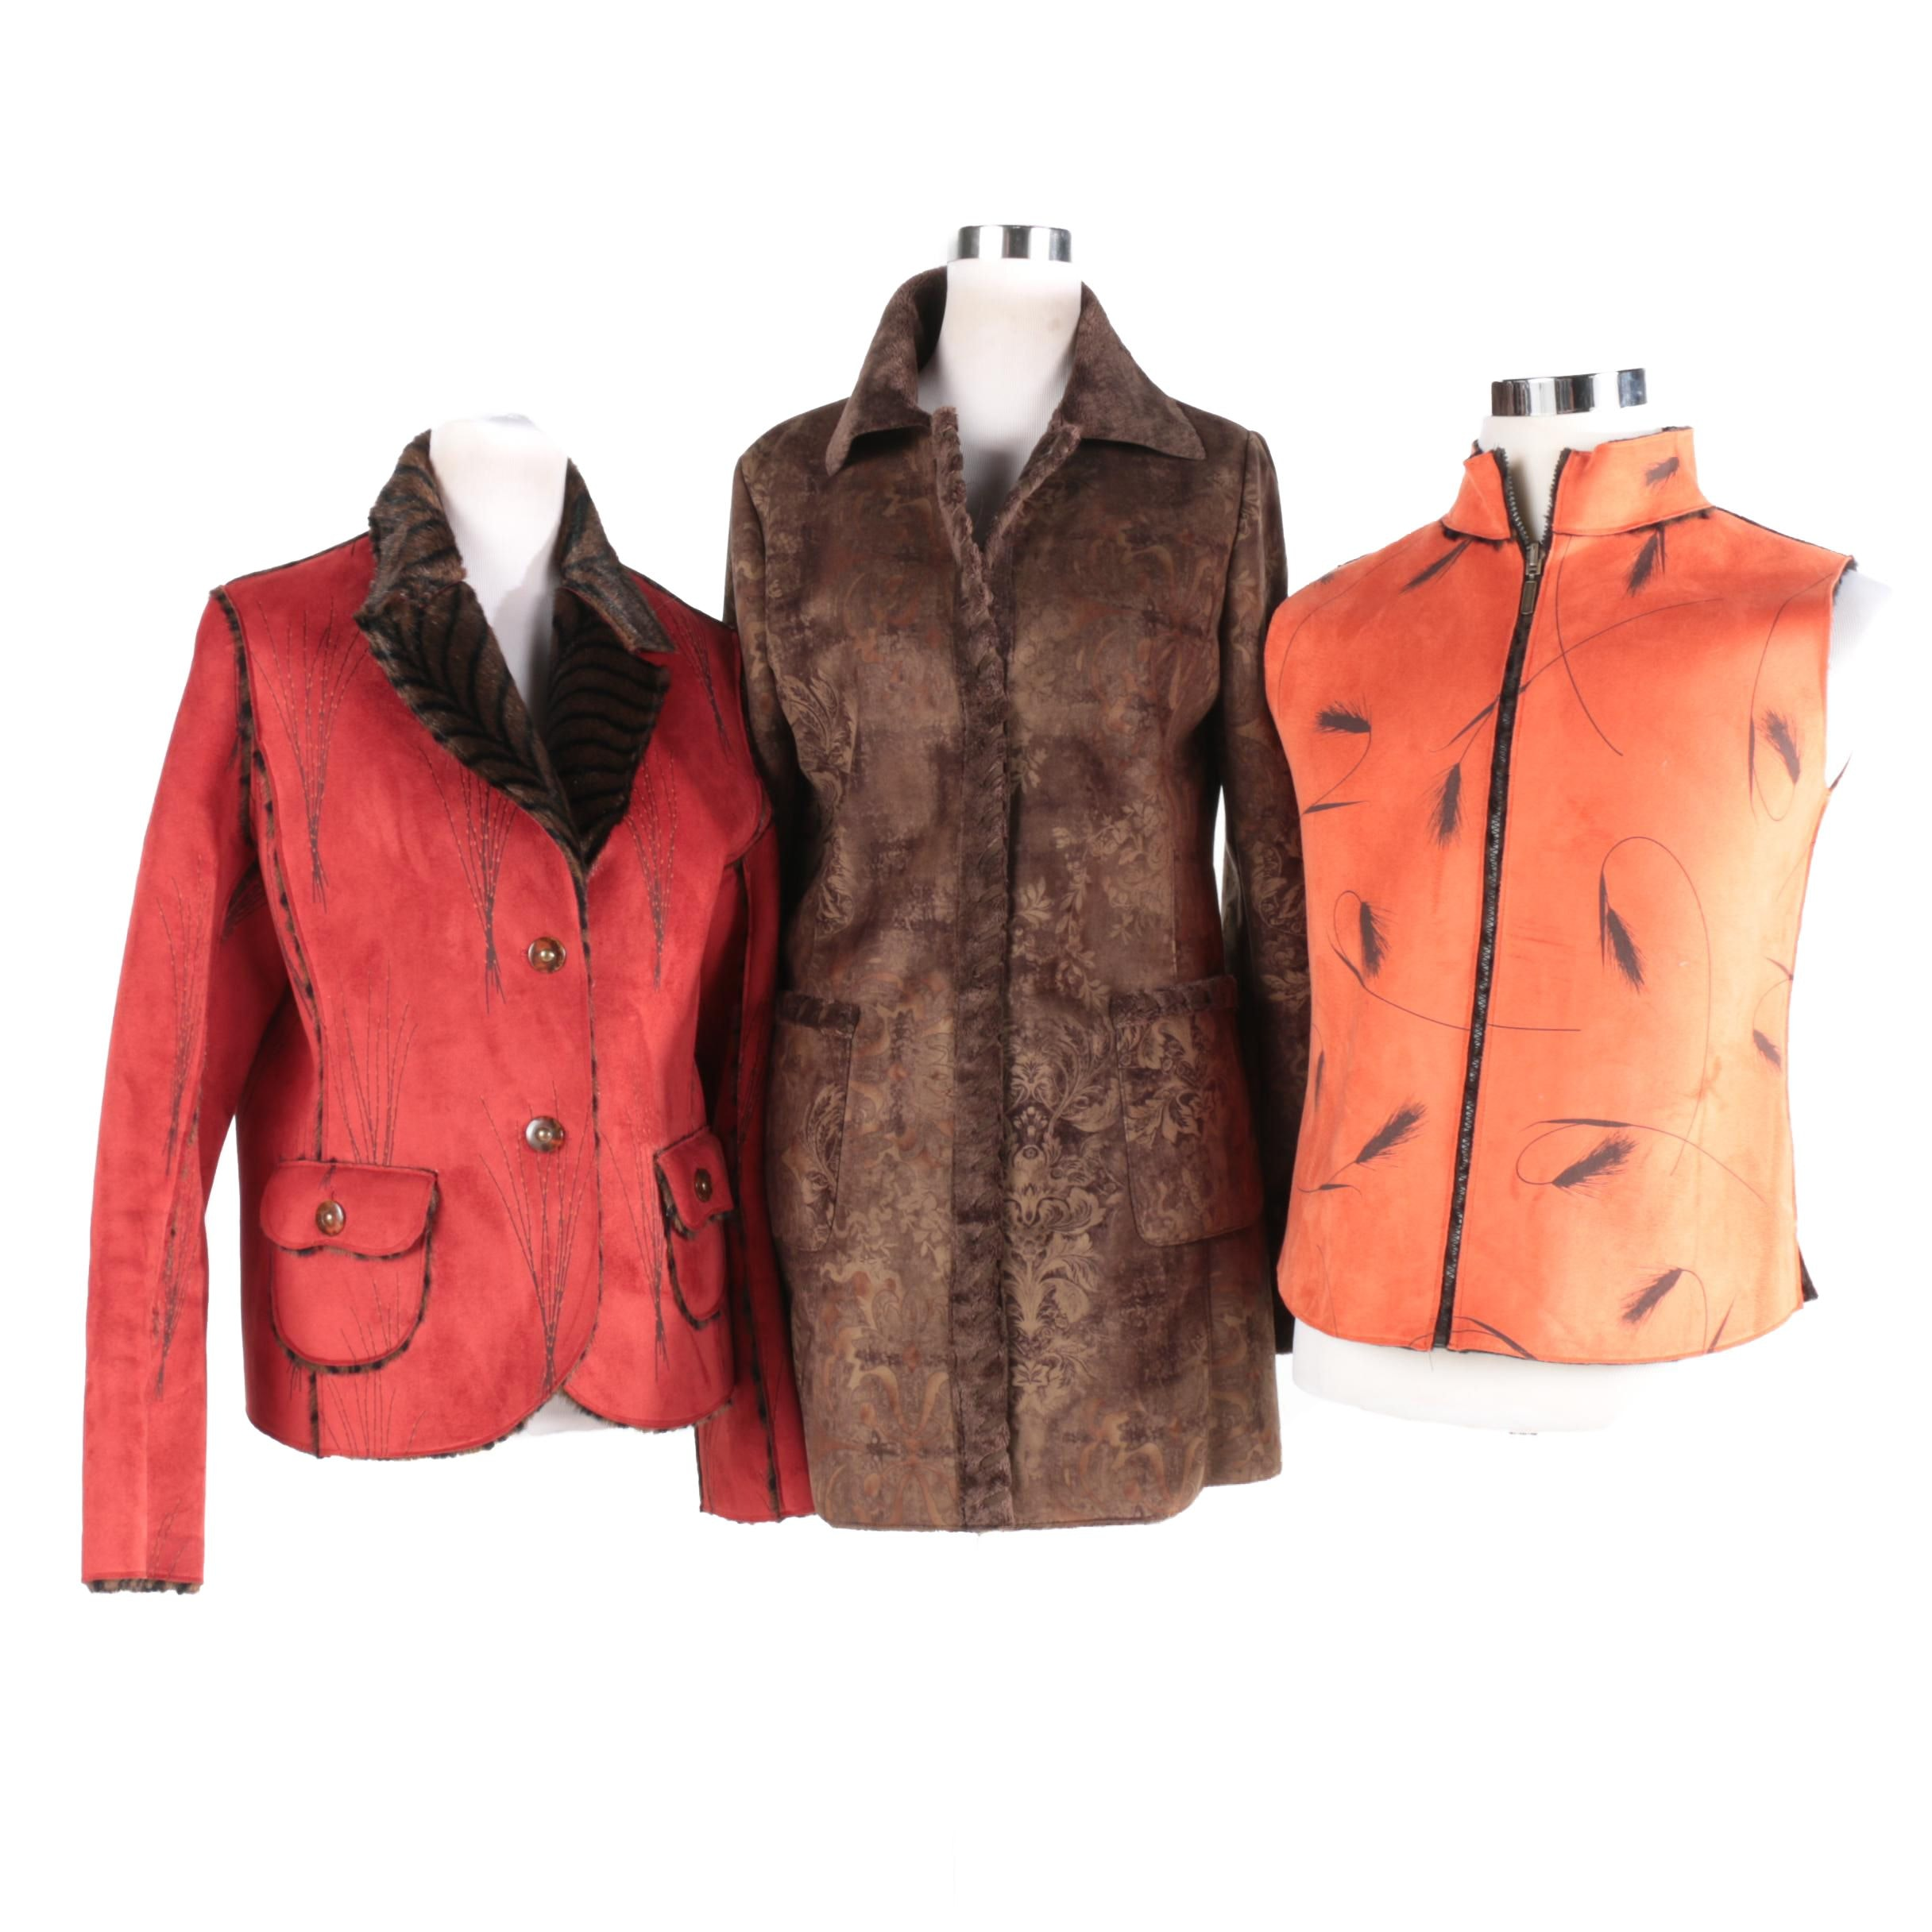 Women's Robert Kitchen Fall Sweater Vest and Sweater and Another Jacket